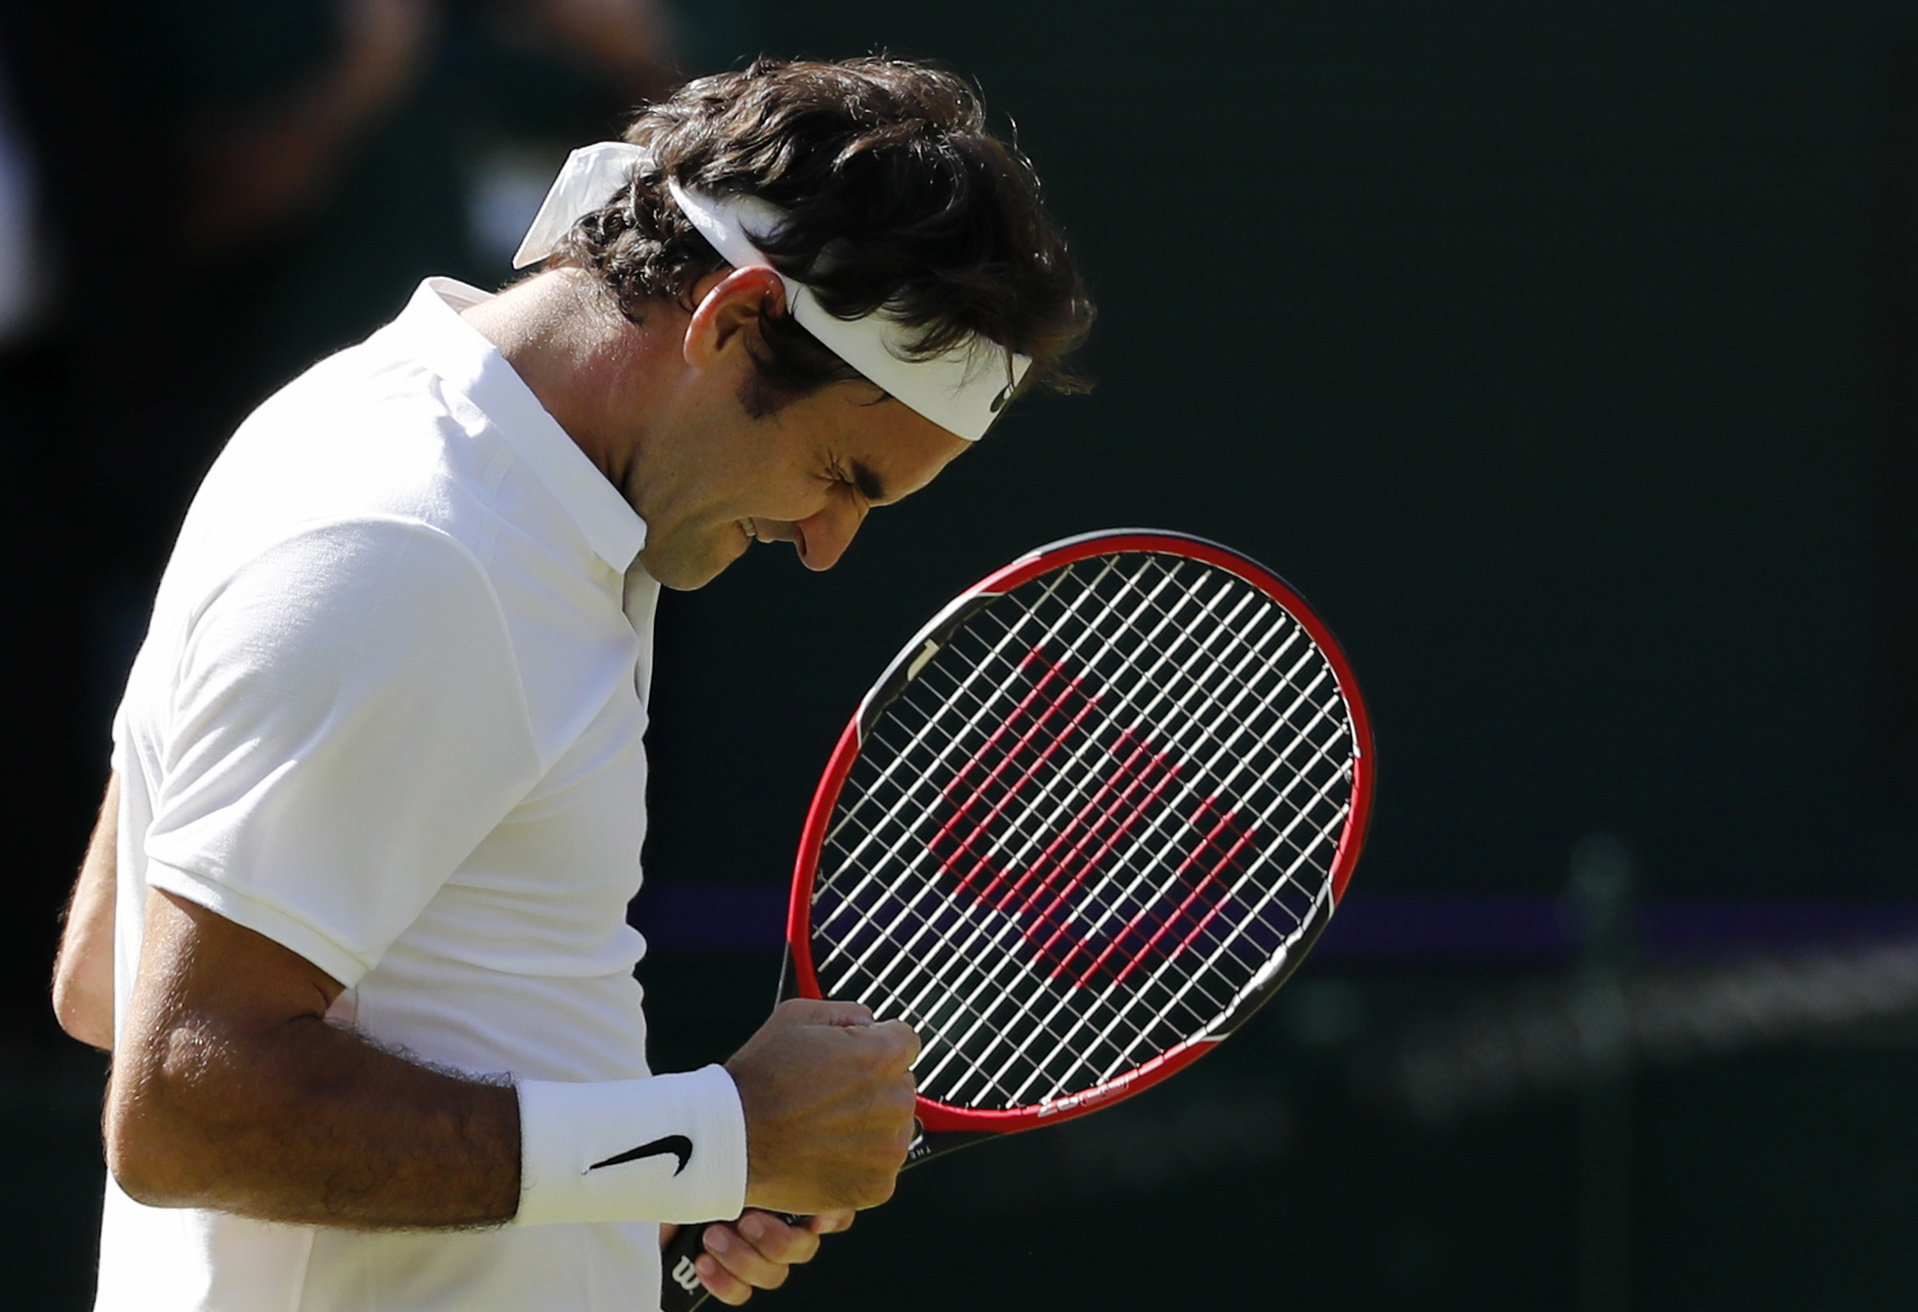 Roger Federer of Switzerland celebrates at match point after beating Marin Cilic of Croatia in their men's singles match on day ten of the Wimbledon Tennis Championships in London, Wednesday, July 6, 2016. (AP Photo/Ben Curtis)